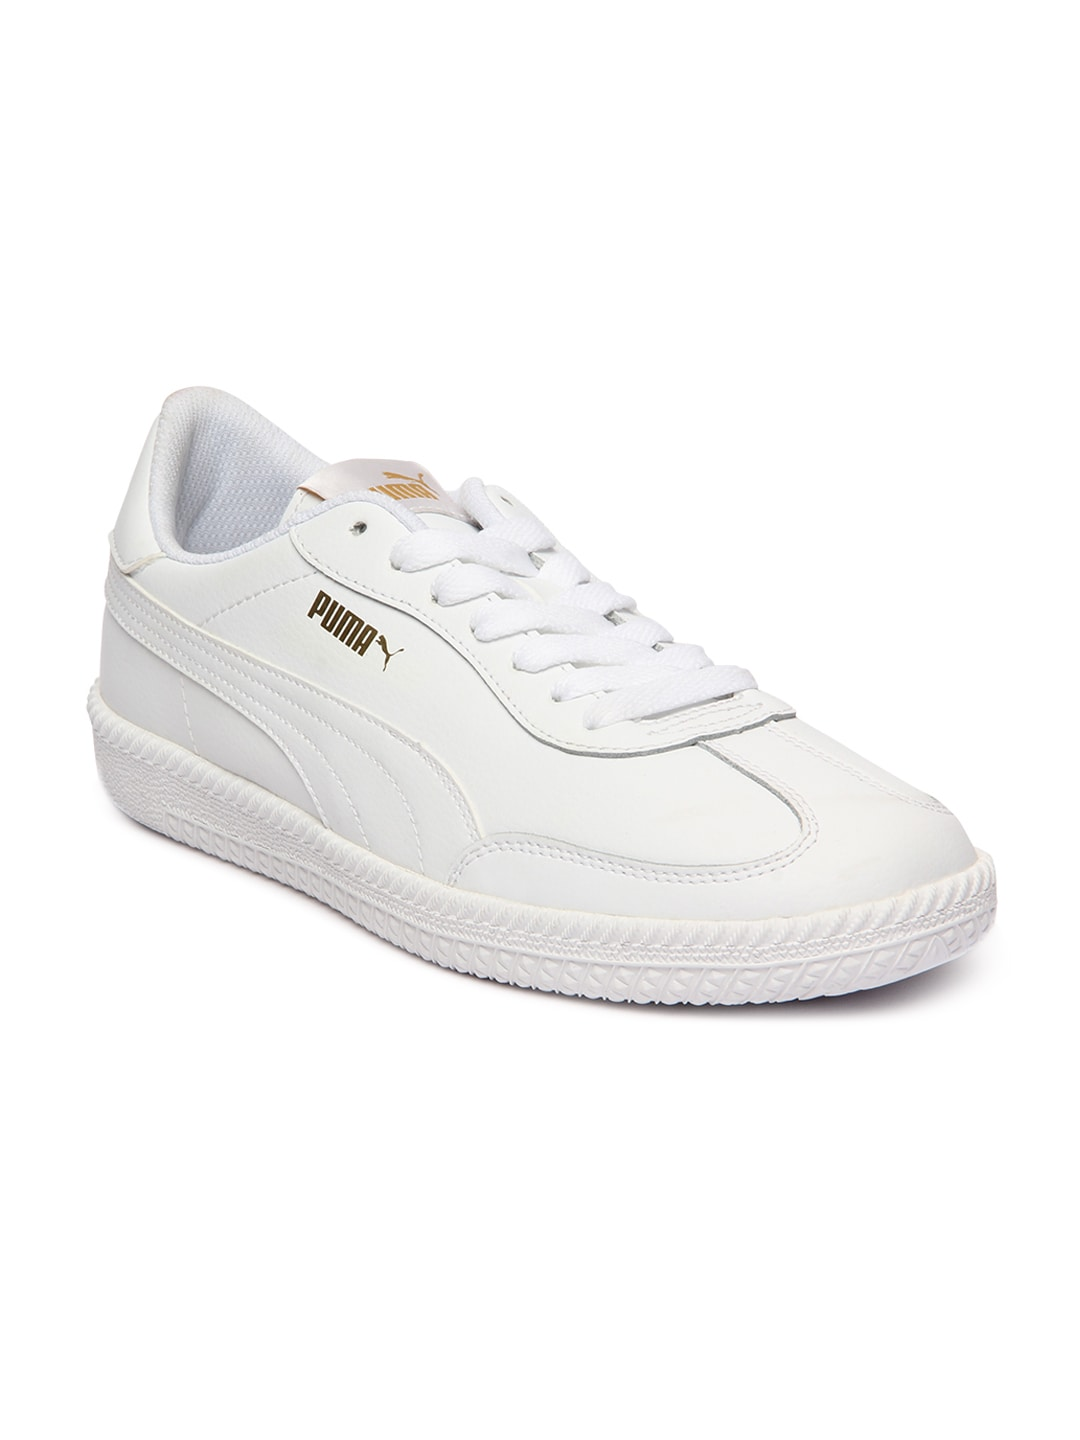 19257913abf011 Buy Puma Unisex White Match 74 Tumbled Sneakers - Casual Shoes for ...